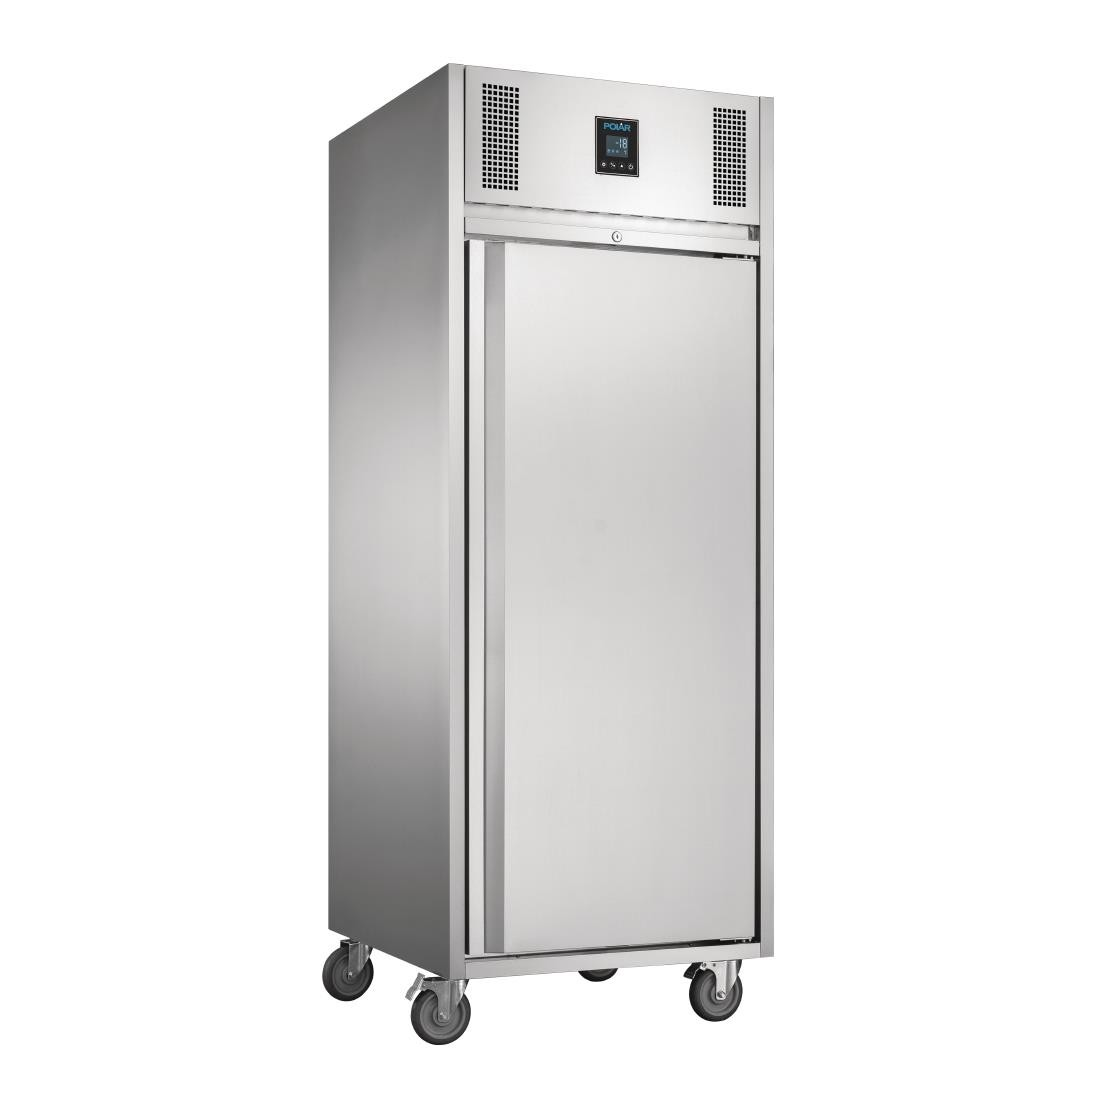 Polar UA002 U-Series Premium Single Door Freezer